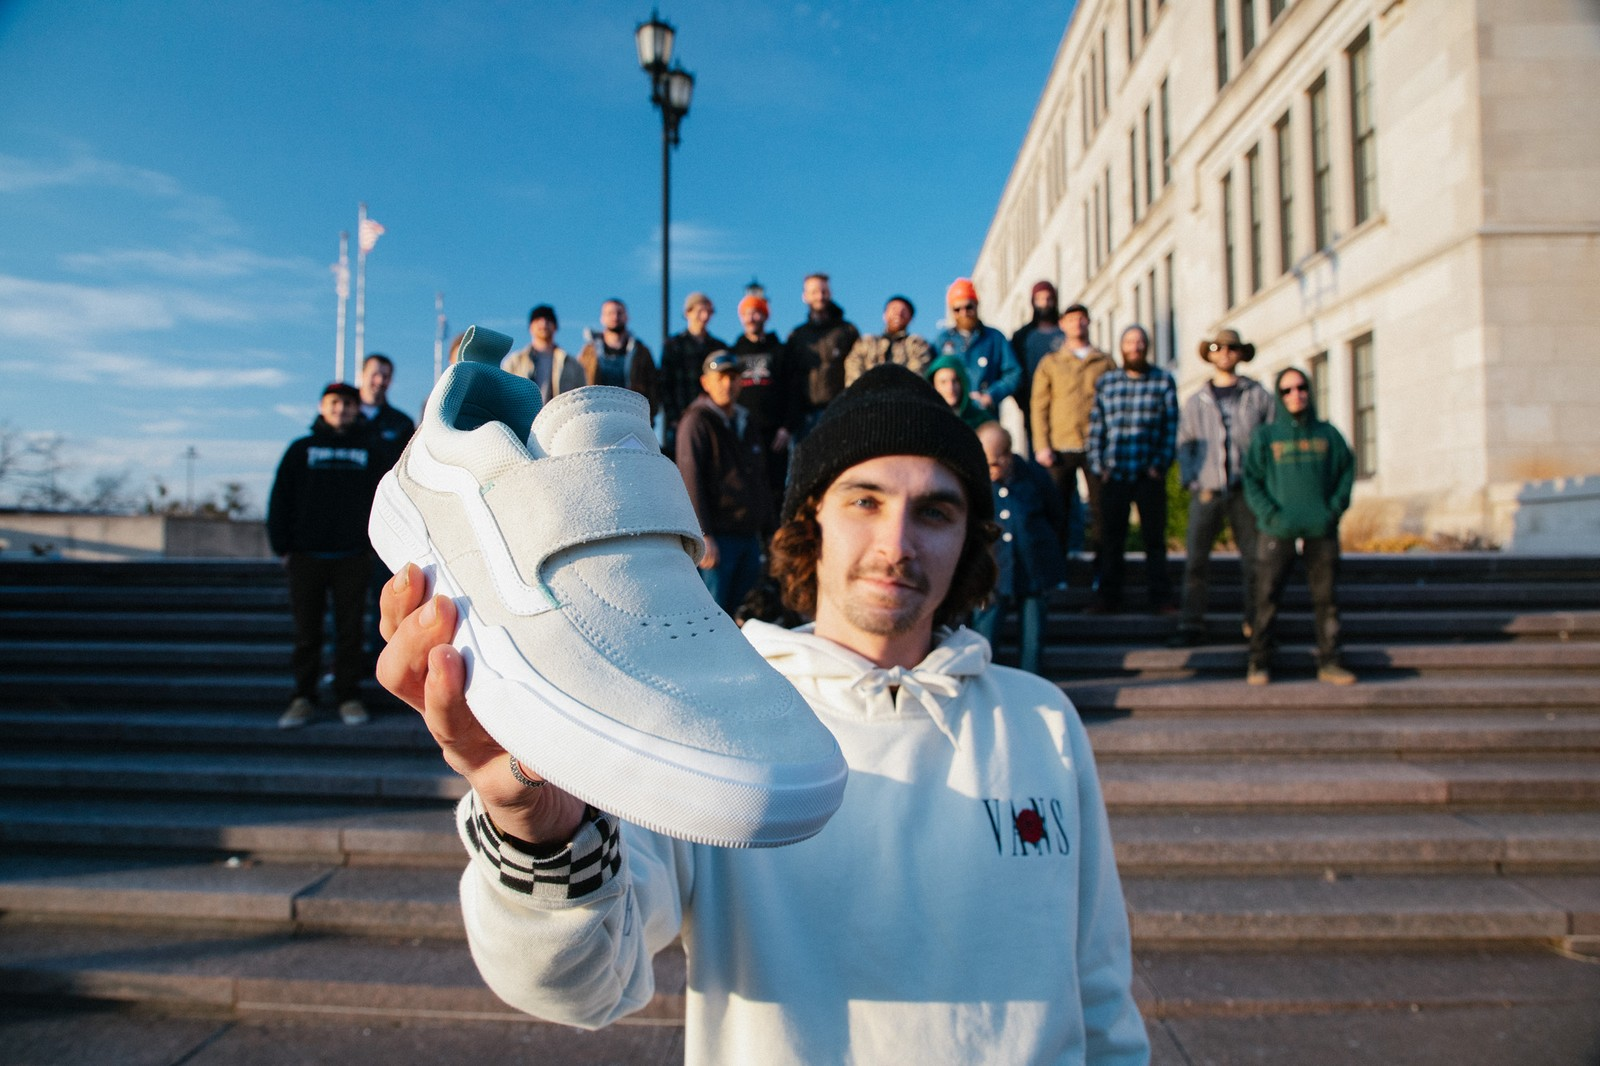 Vans To Release 'Kyle Walker Pro 2' & Apparel Collection This Month